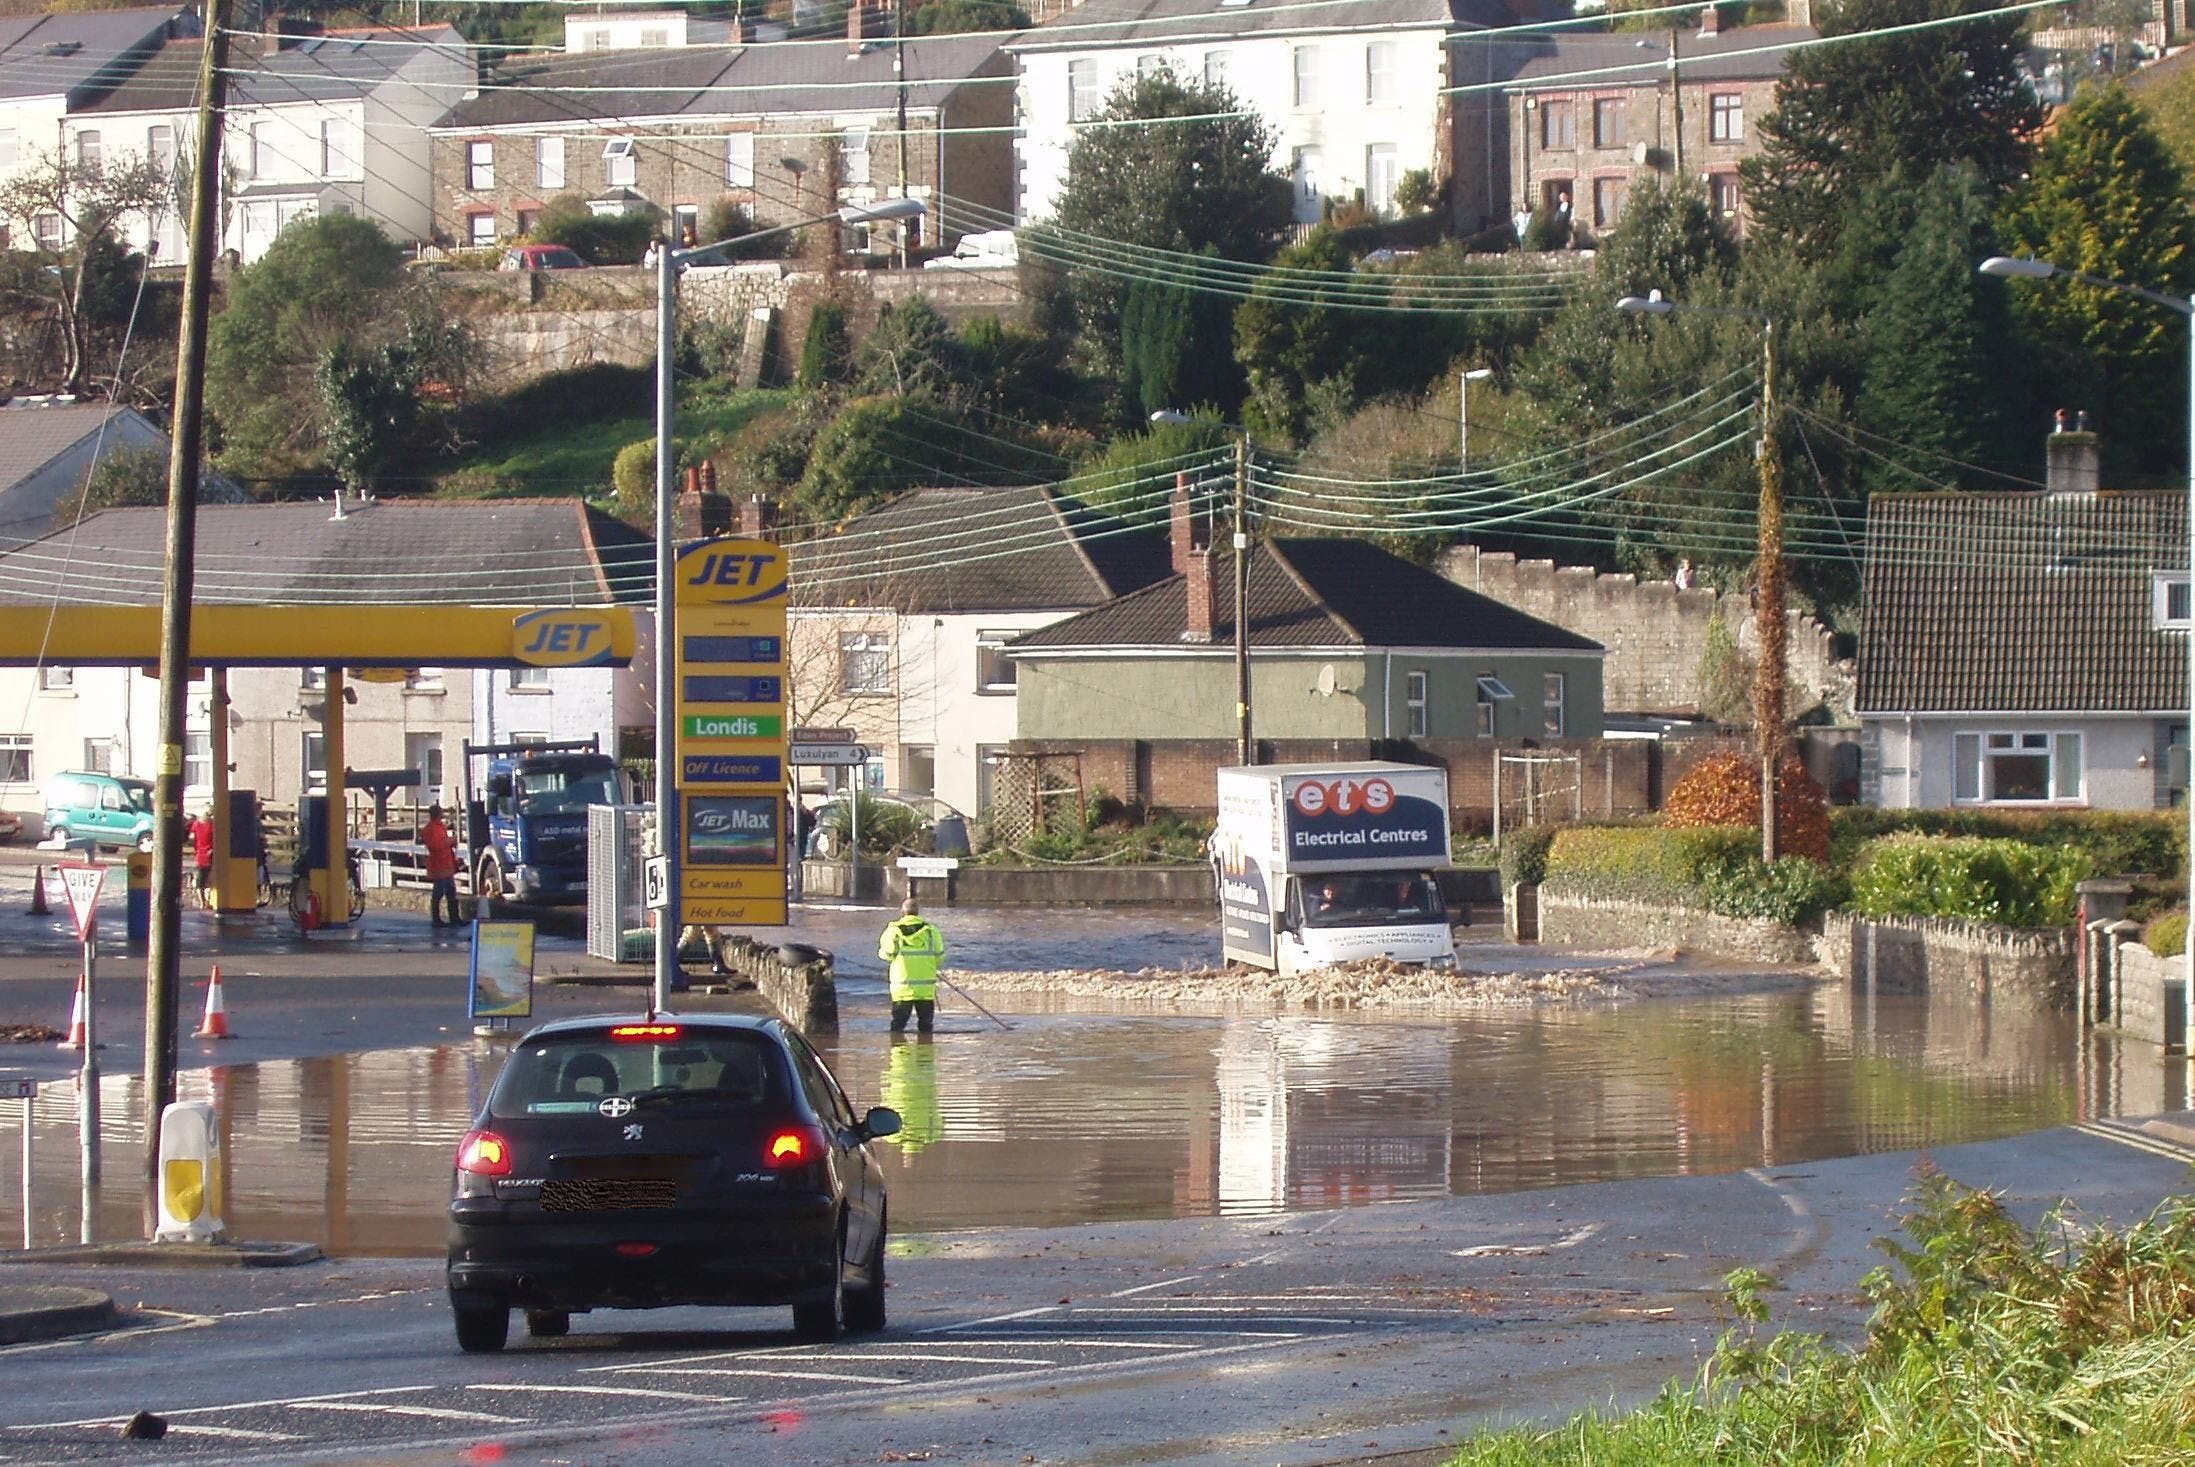 Deep flood water covering the A390 in front of the Jet garage.